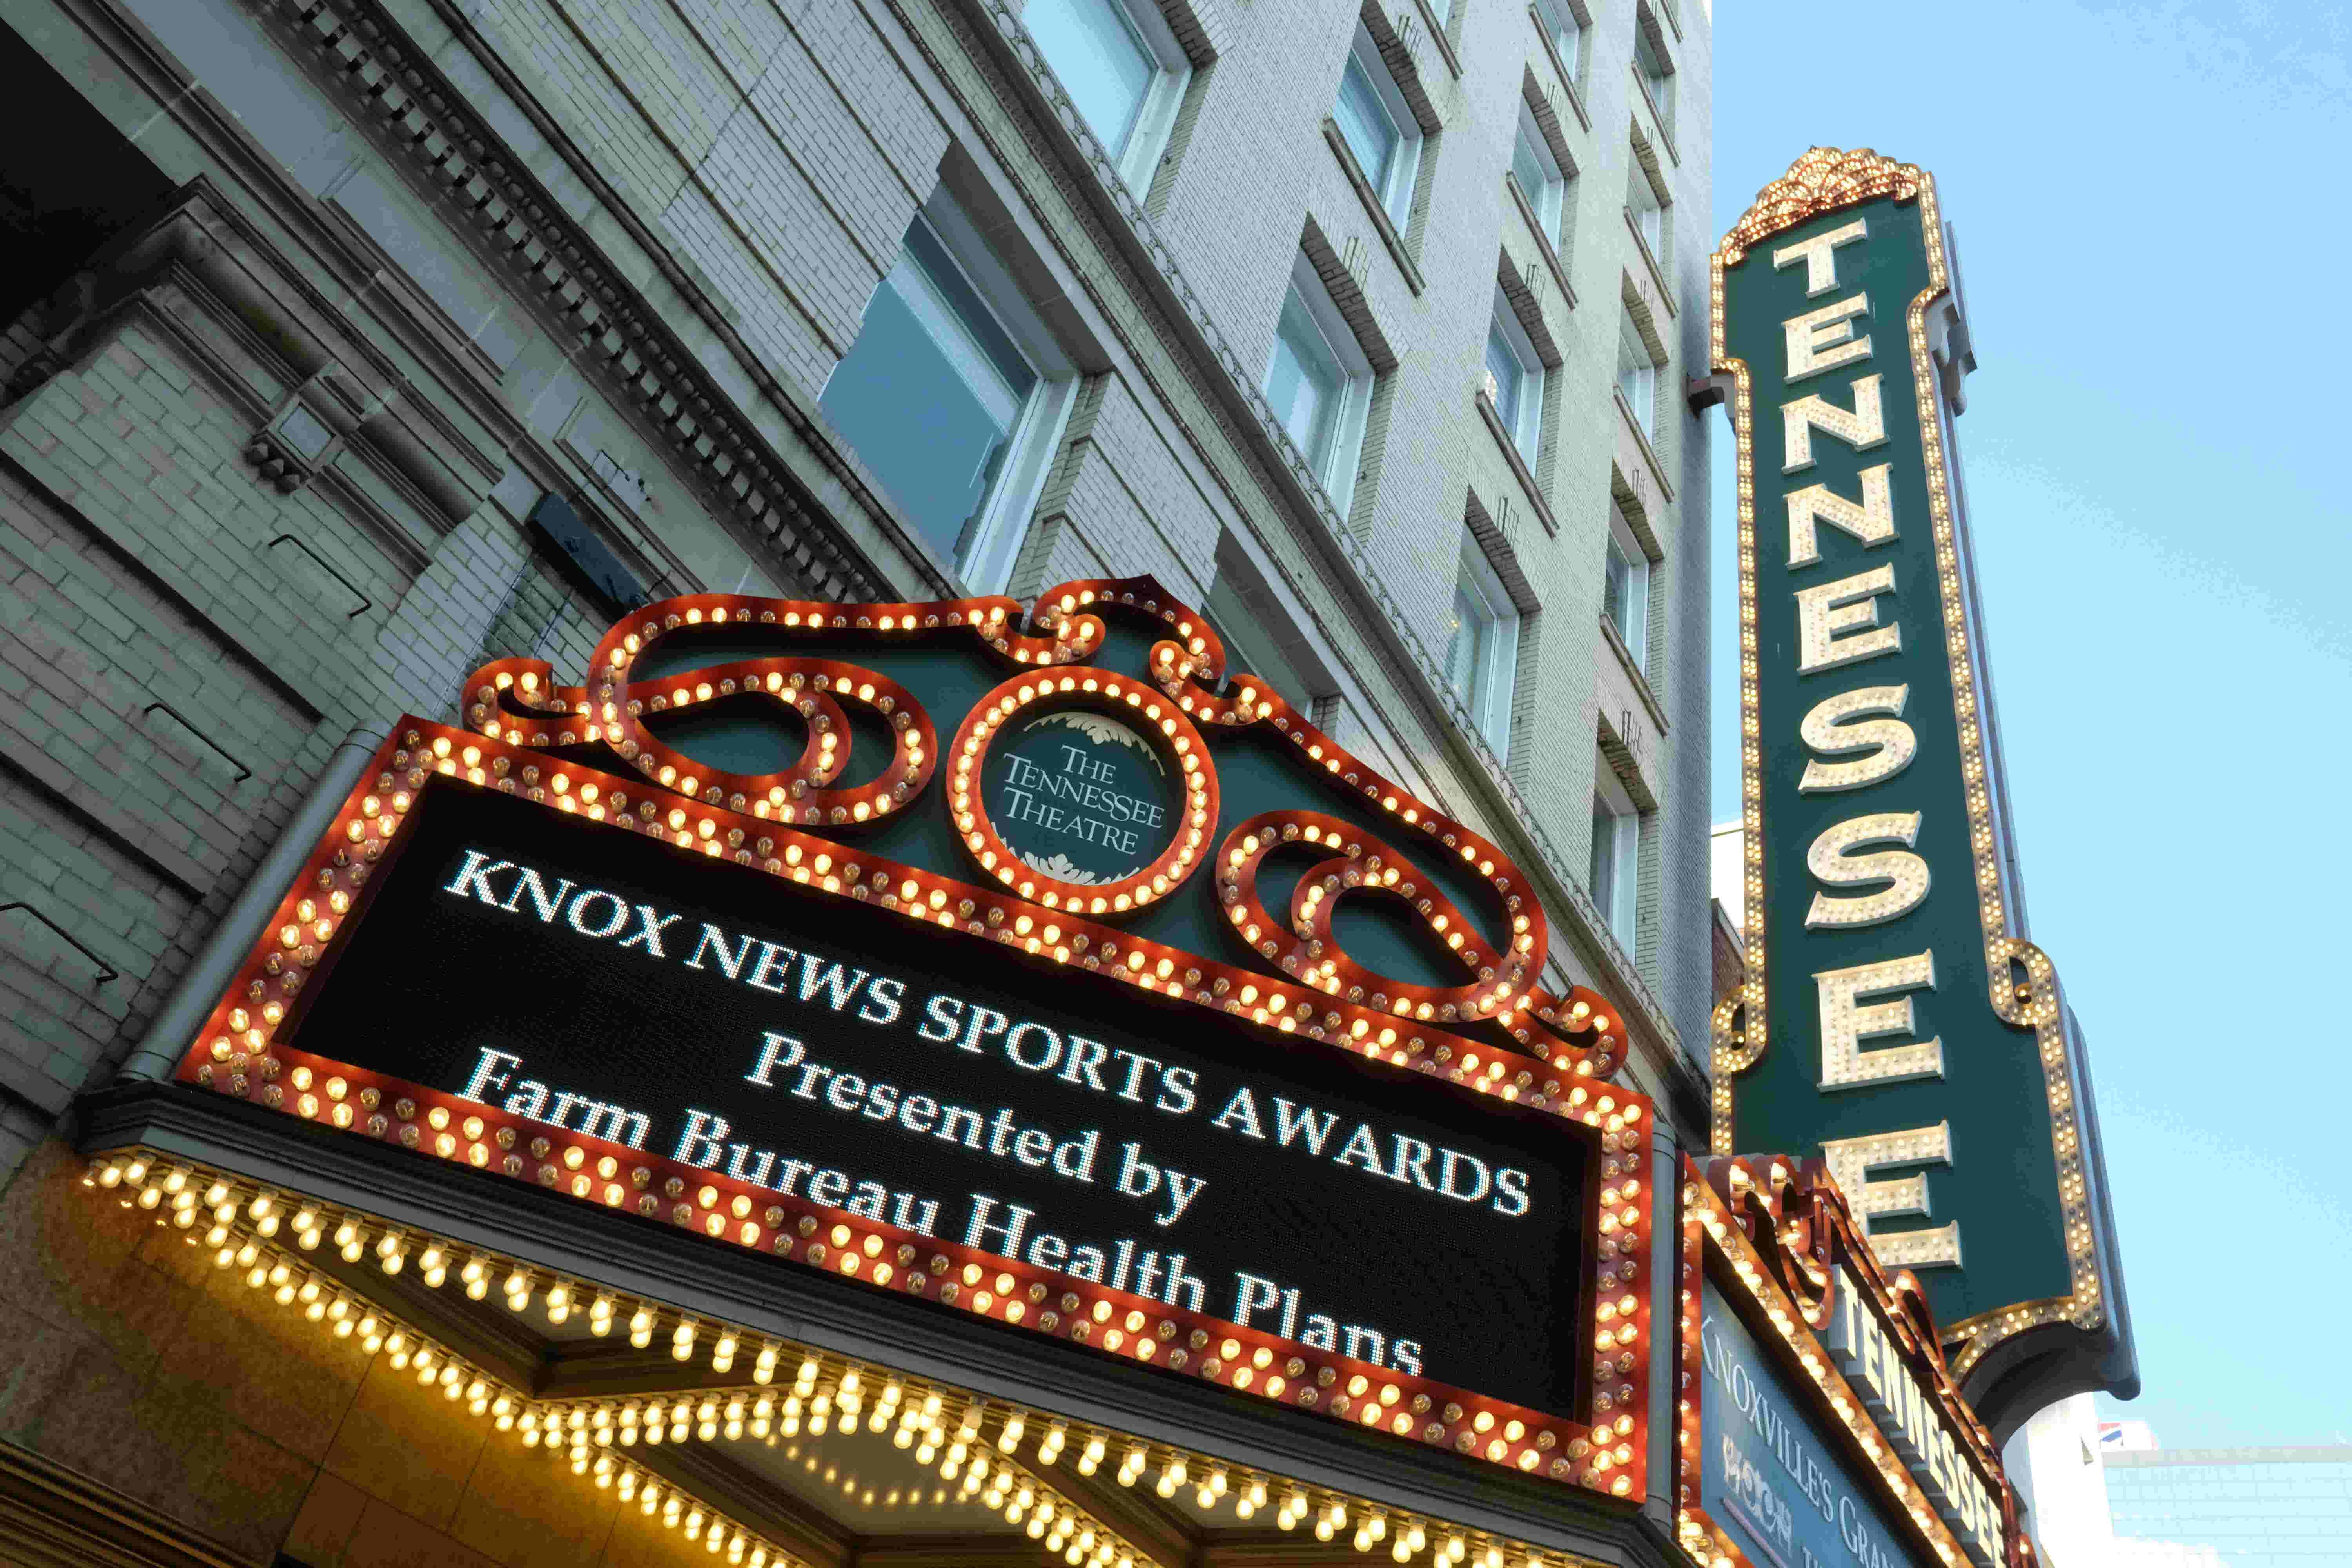 Knox News Sports Awards: See the winners of the awards